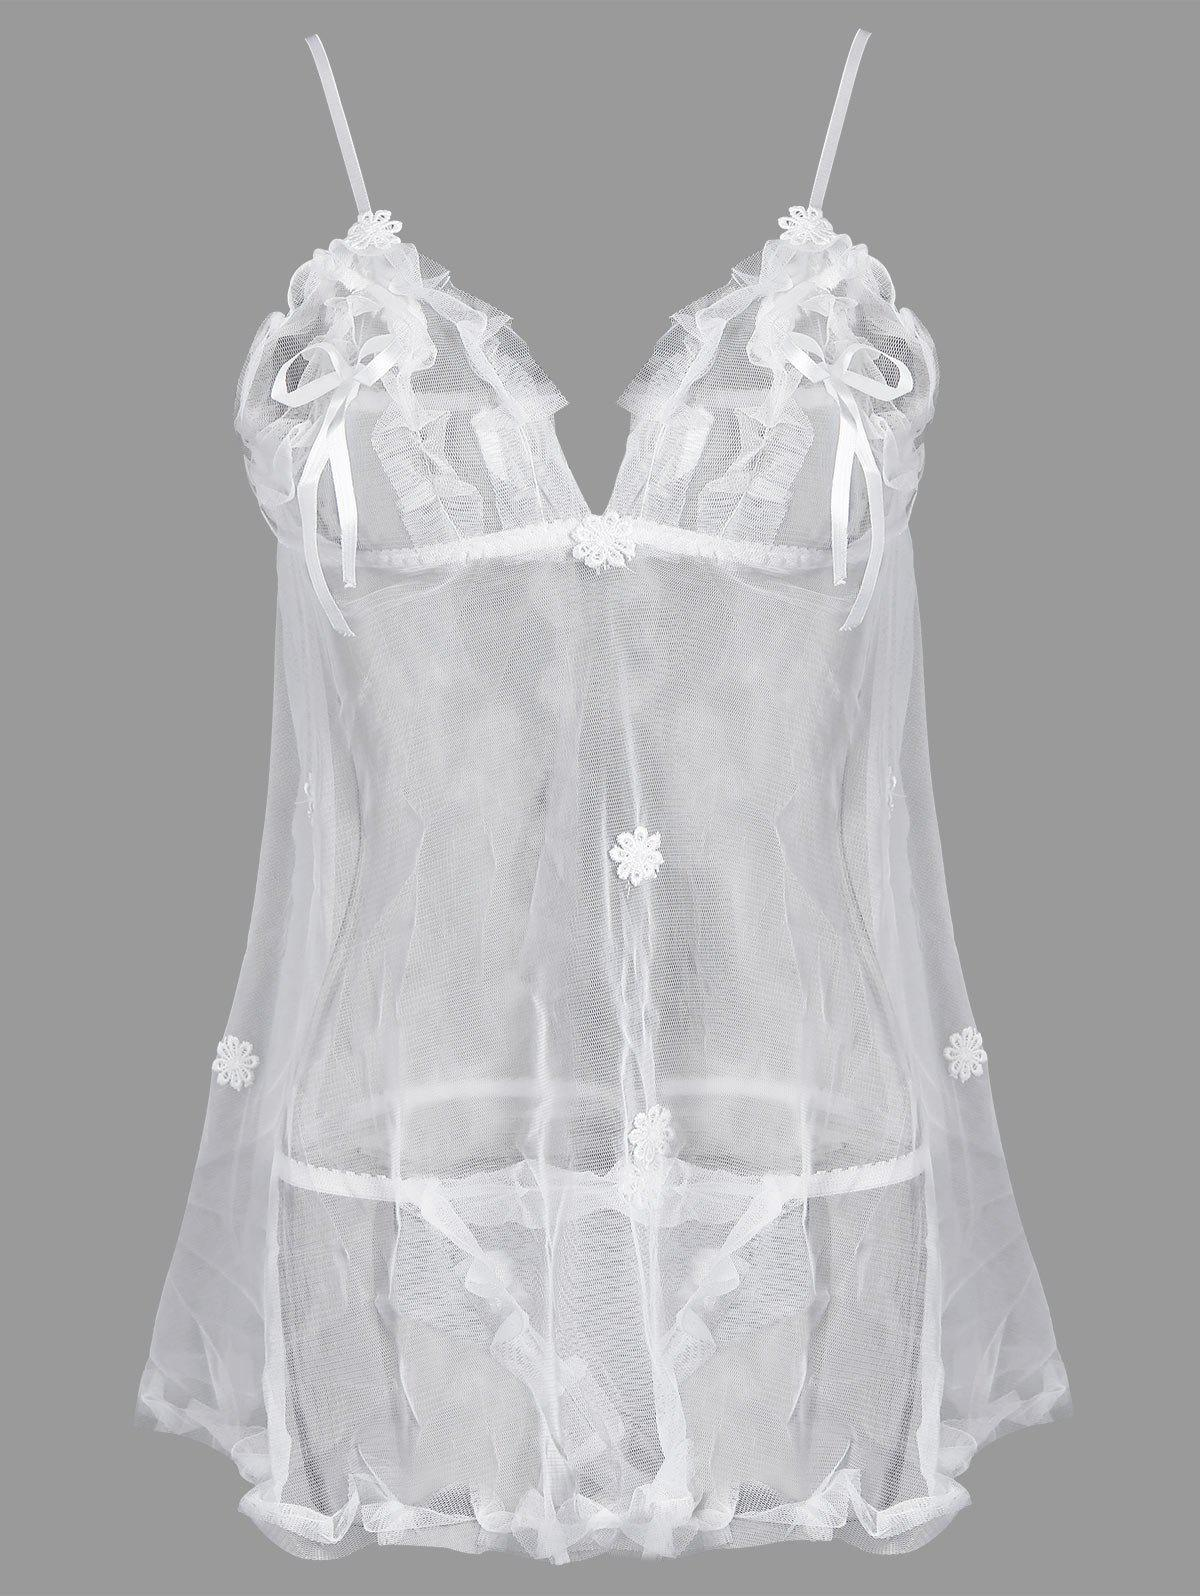 See Through Plus Size Babydoll with AppliqueWOMEN<br><br>Size: 2XL; Color: WHITE; Material: Polyester; Pattern Type: Others; Embellishment: Appliques,Lace,Ruffles; Weight: 0.1700kg; Package Contents: 1 x Babydoll  1 x T-back;